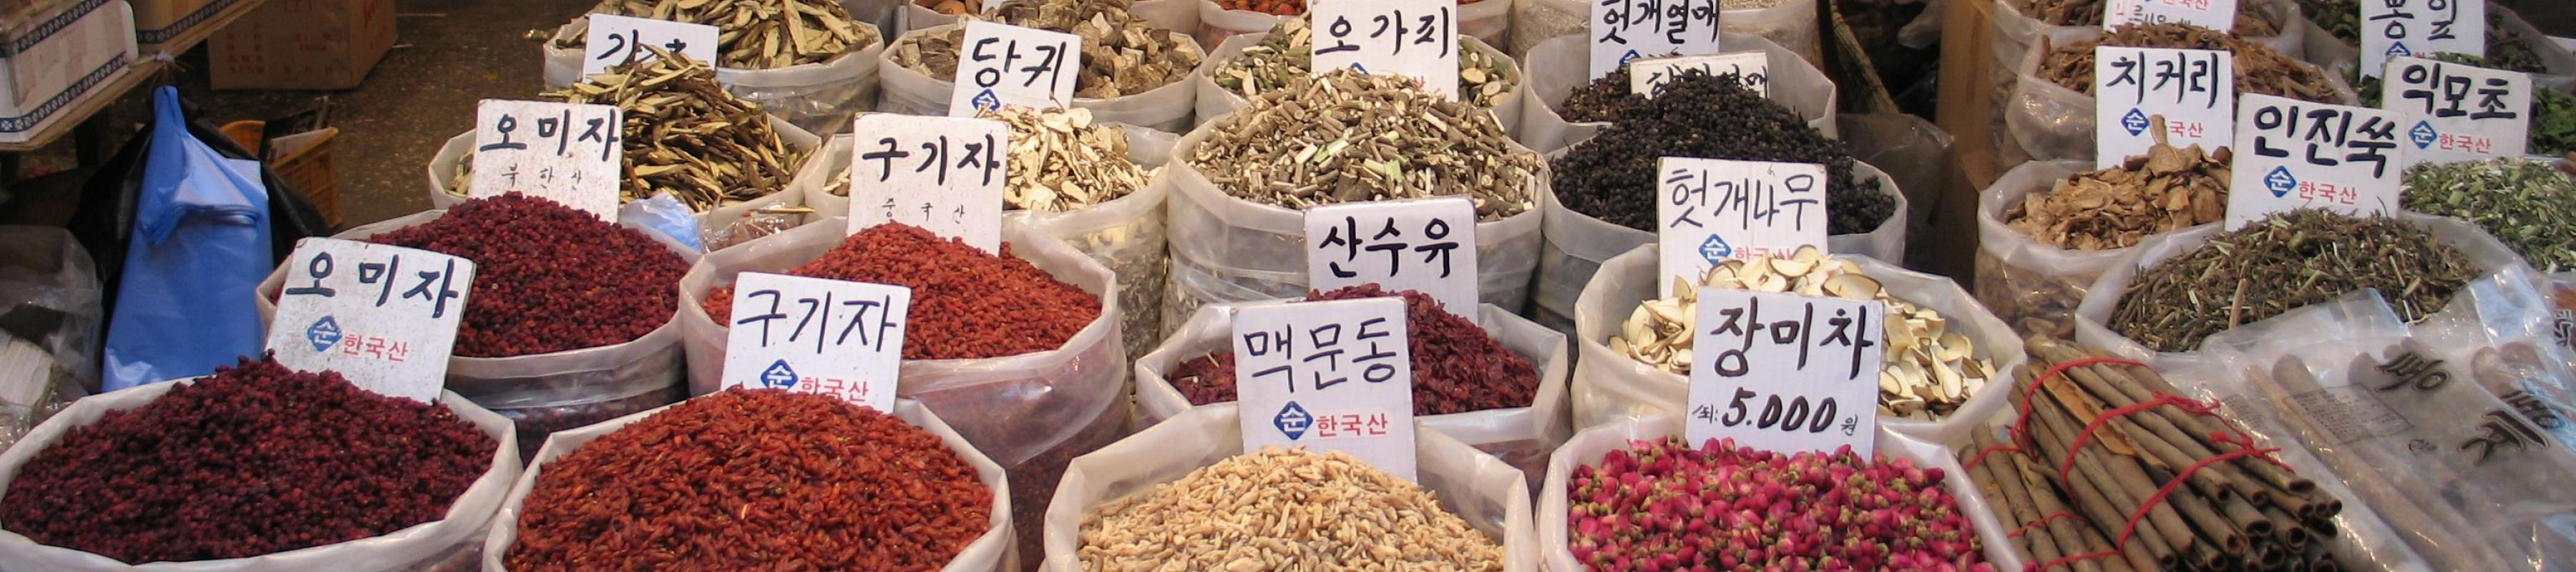 Herbal medicines on sale in South Korea